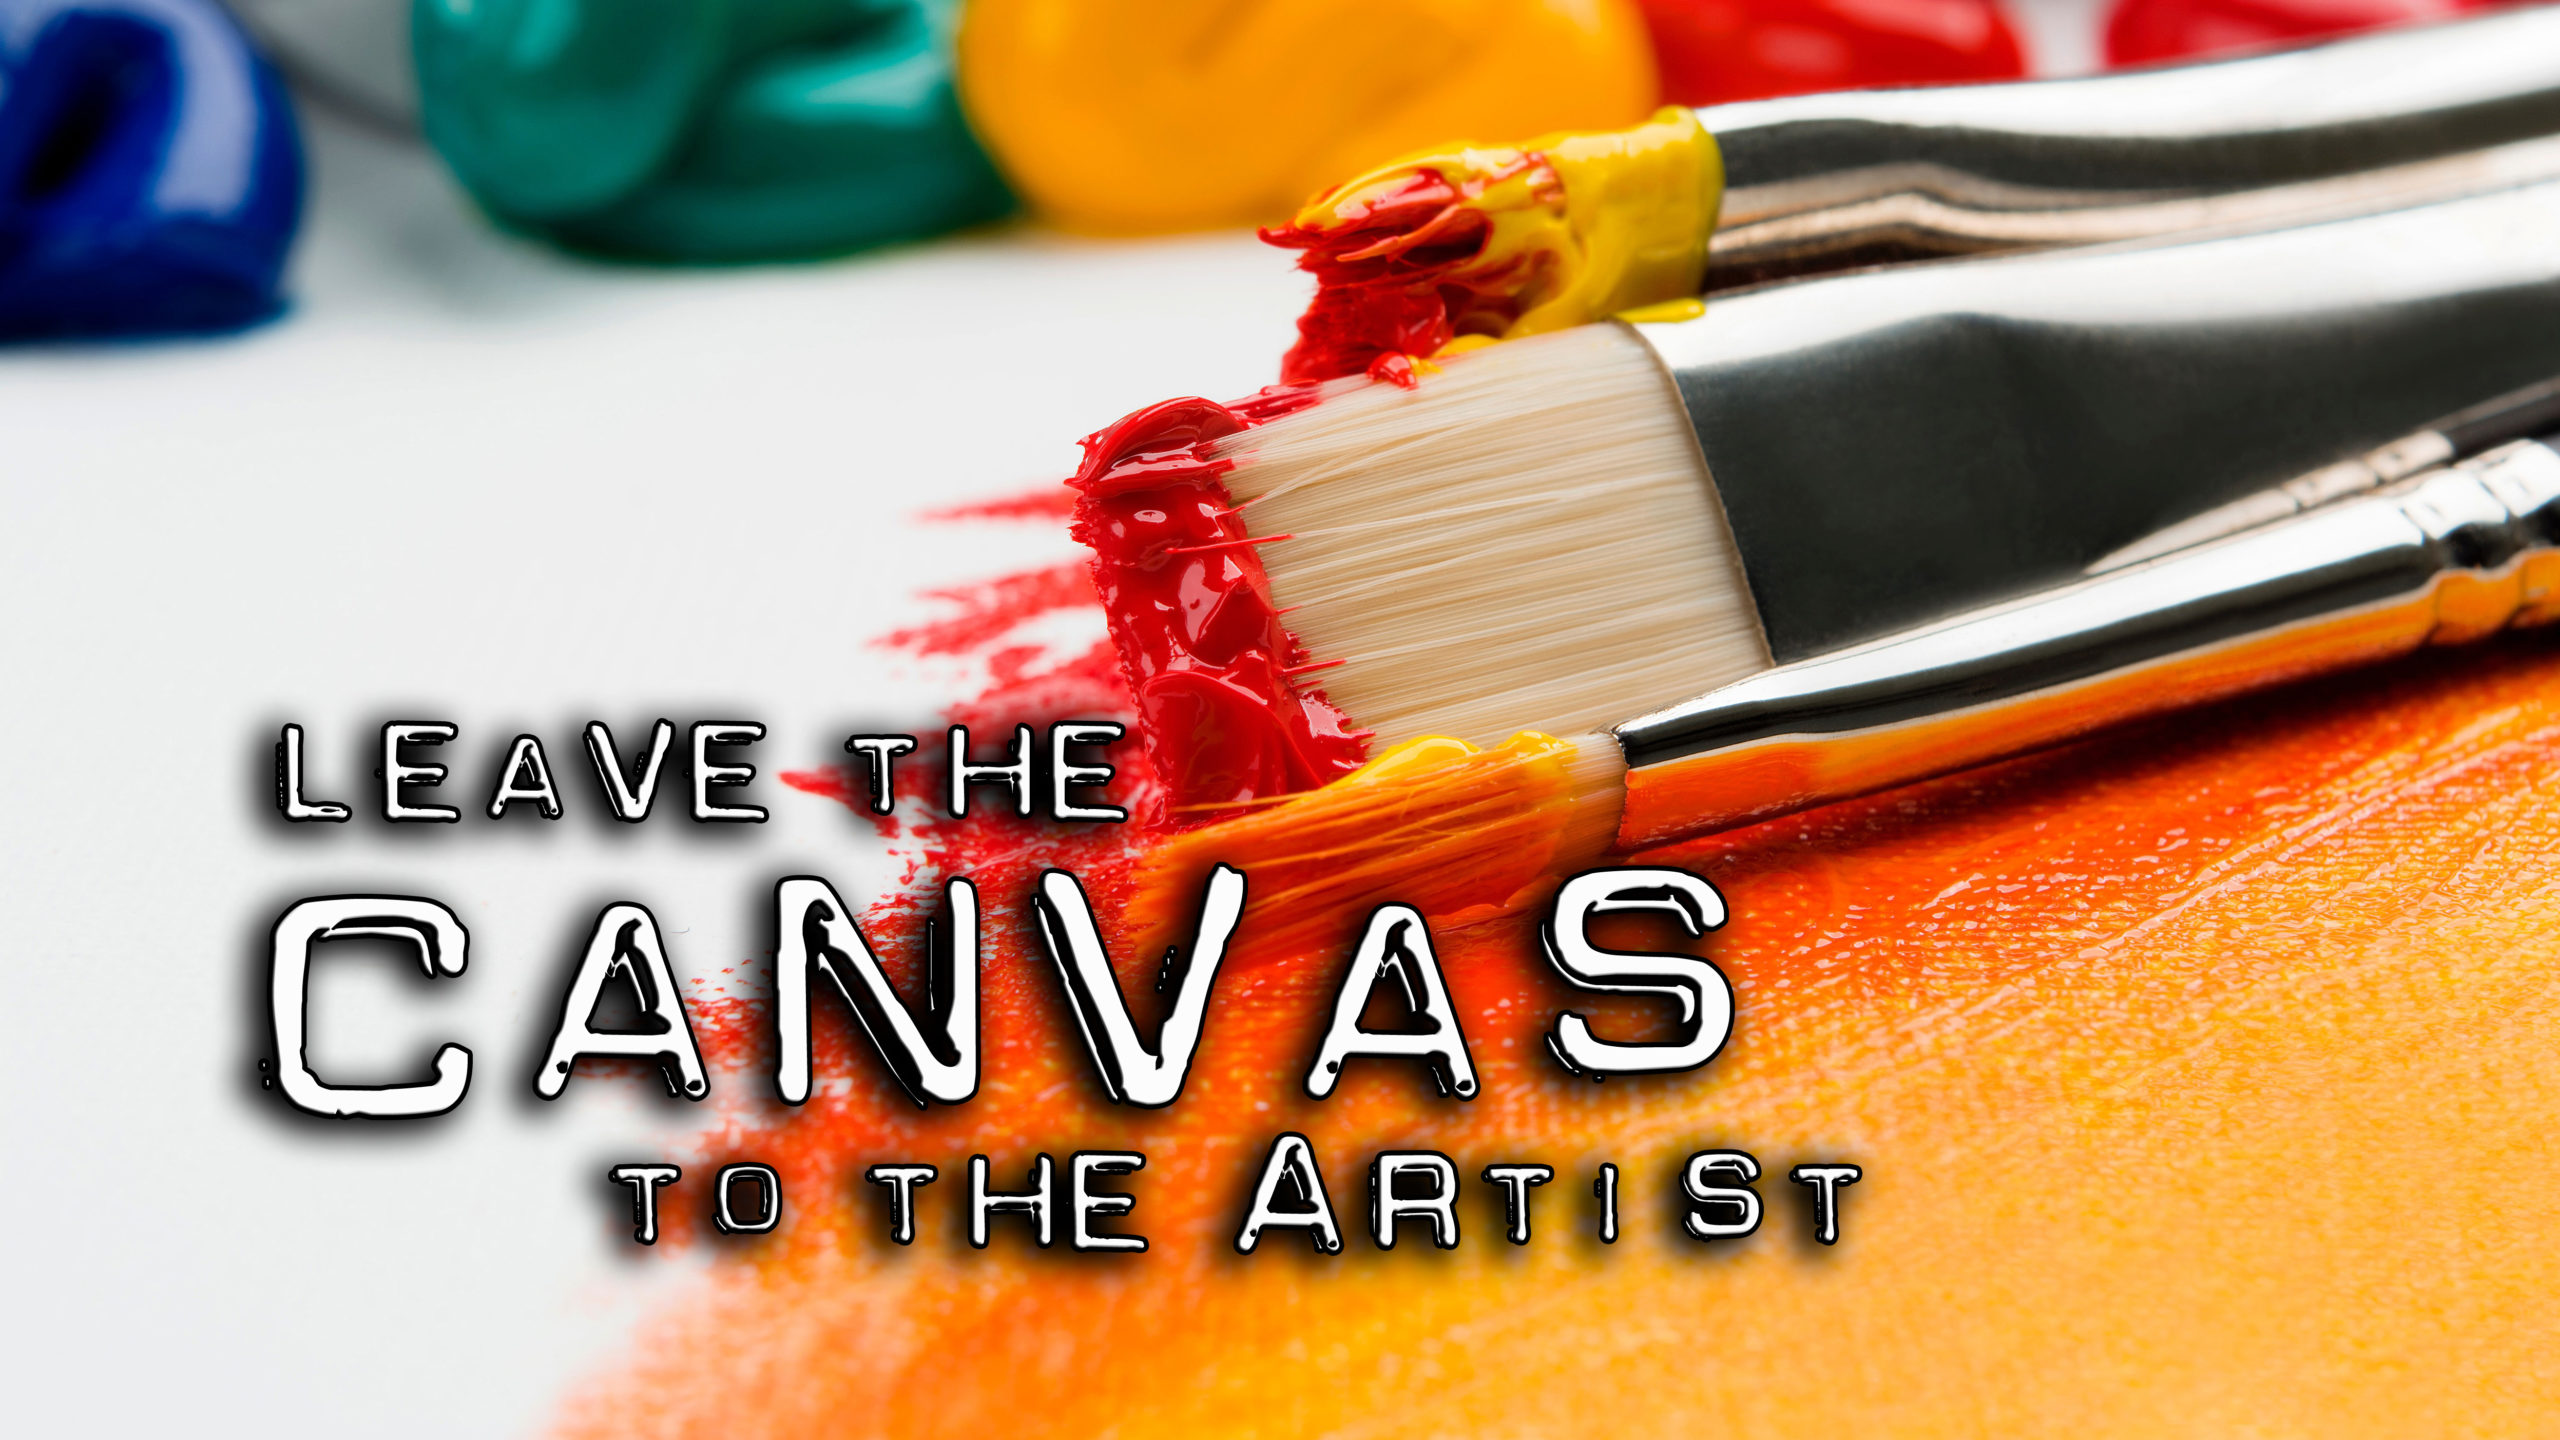 """Leave the canvas to the artist"""